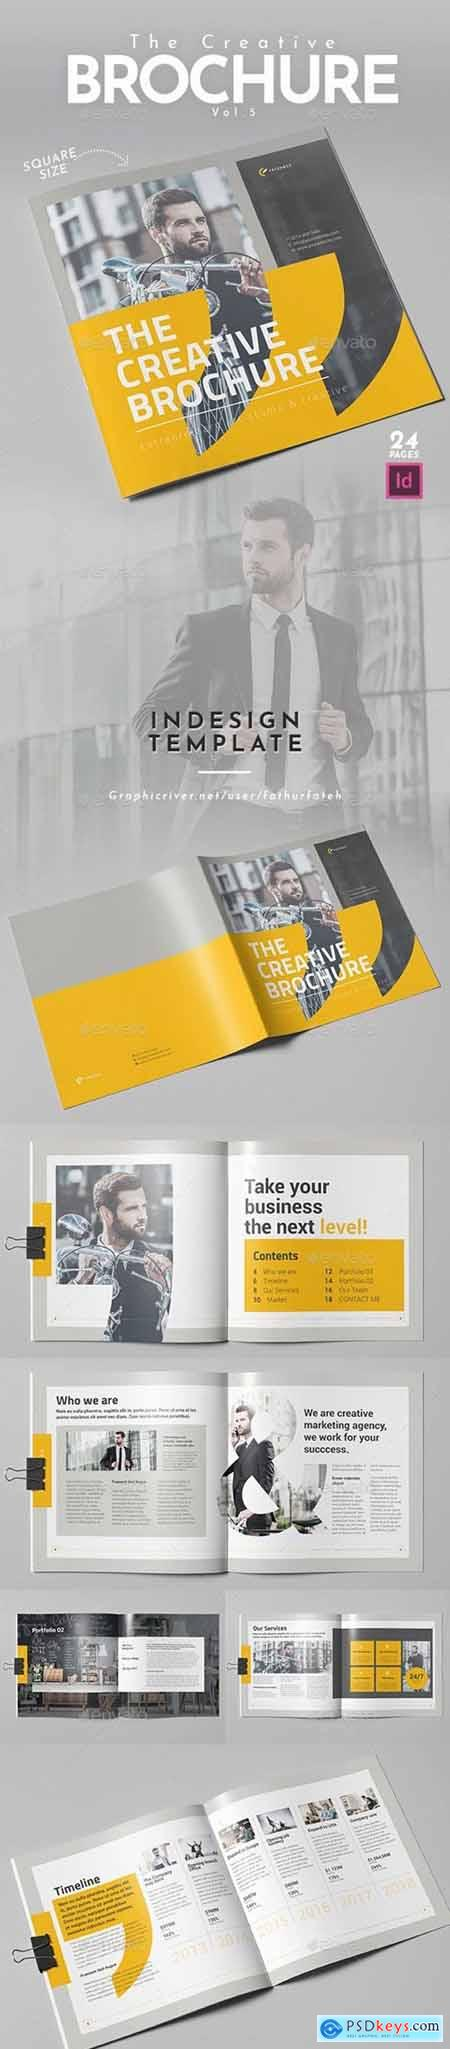 The Creative Brochure Vol.5 - Square